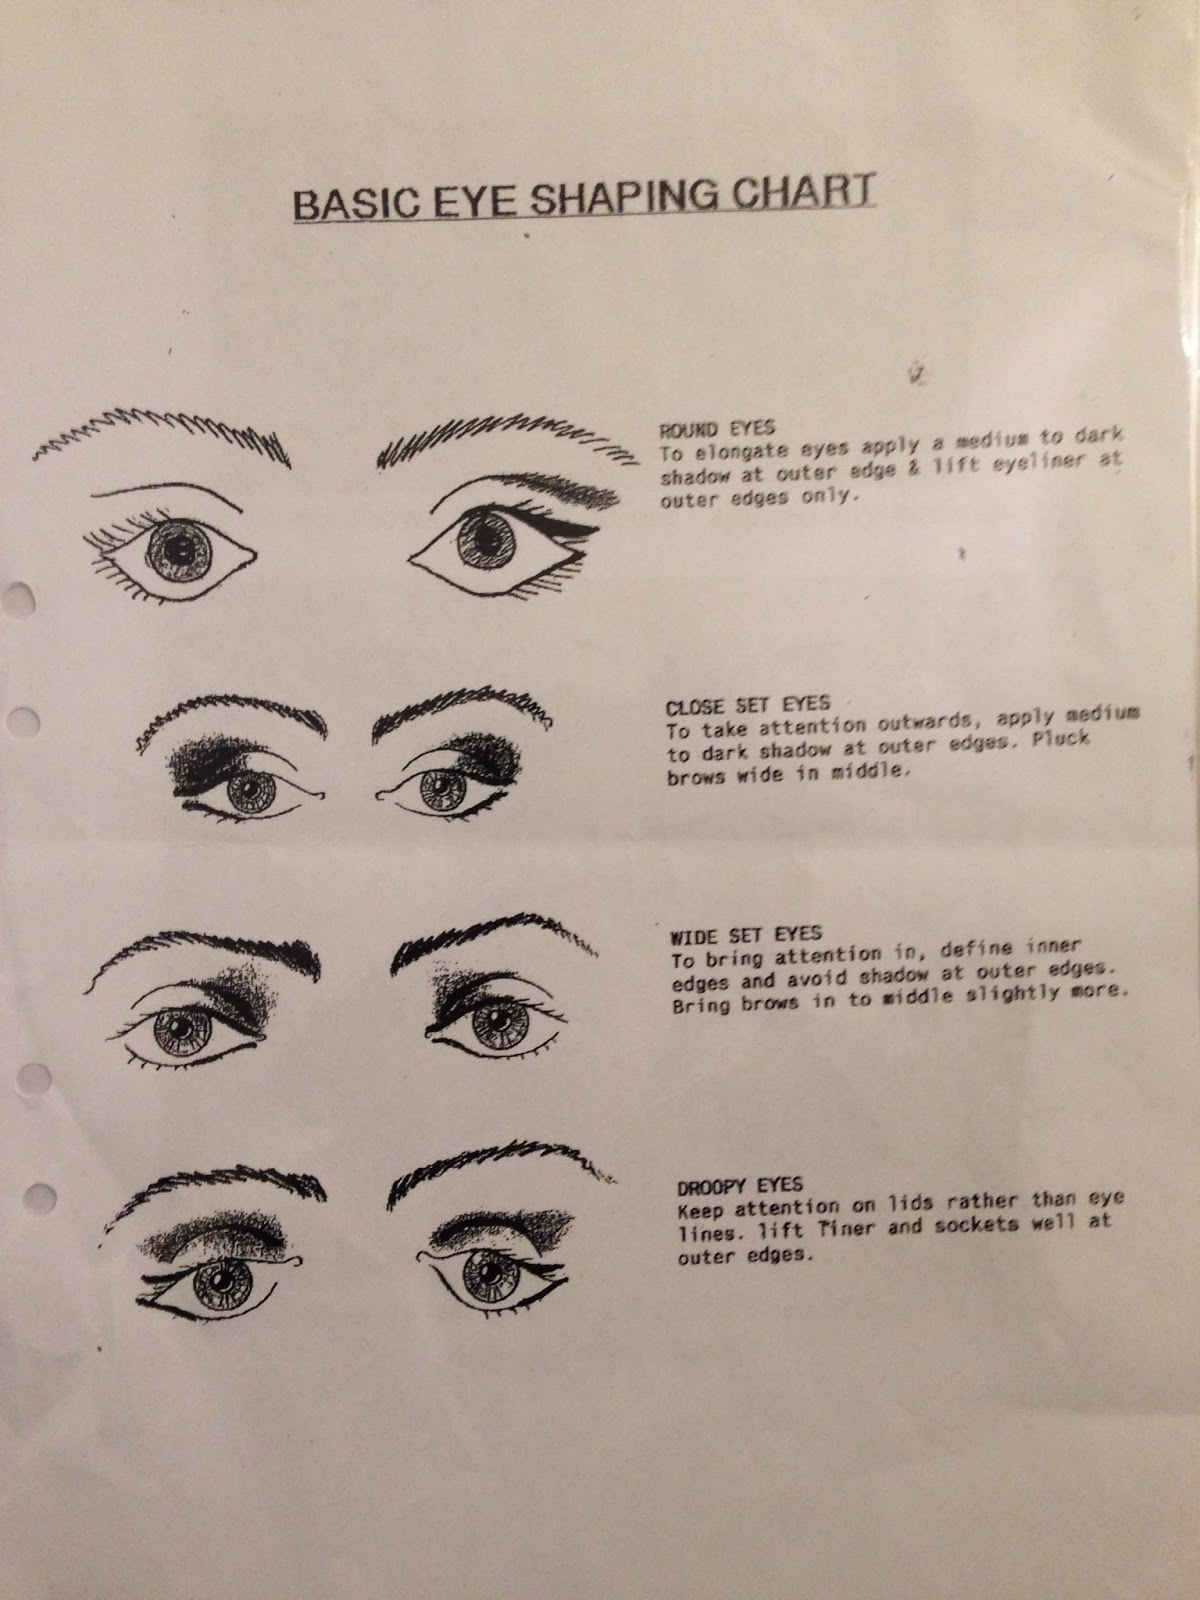 Emily guyon makeup eye makeup practical you can place a thick amount of powder underneath the eye area this will catch any falling eye shadow and enables you to just blow it away instead of geenschuldenfo Gallery